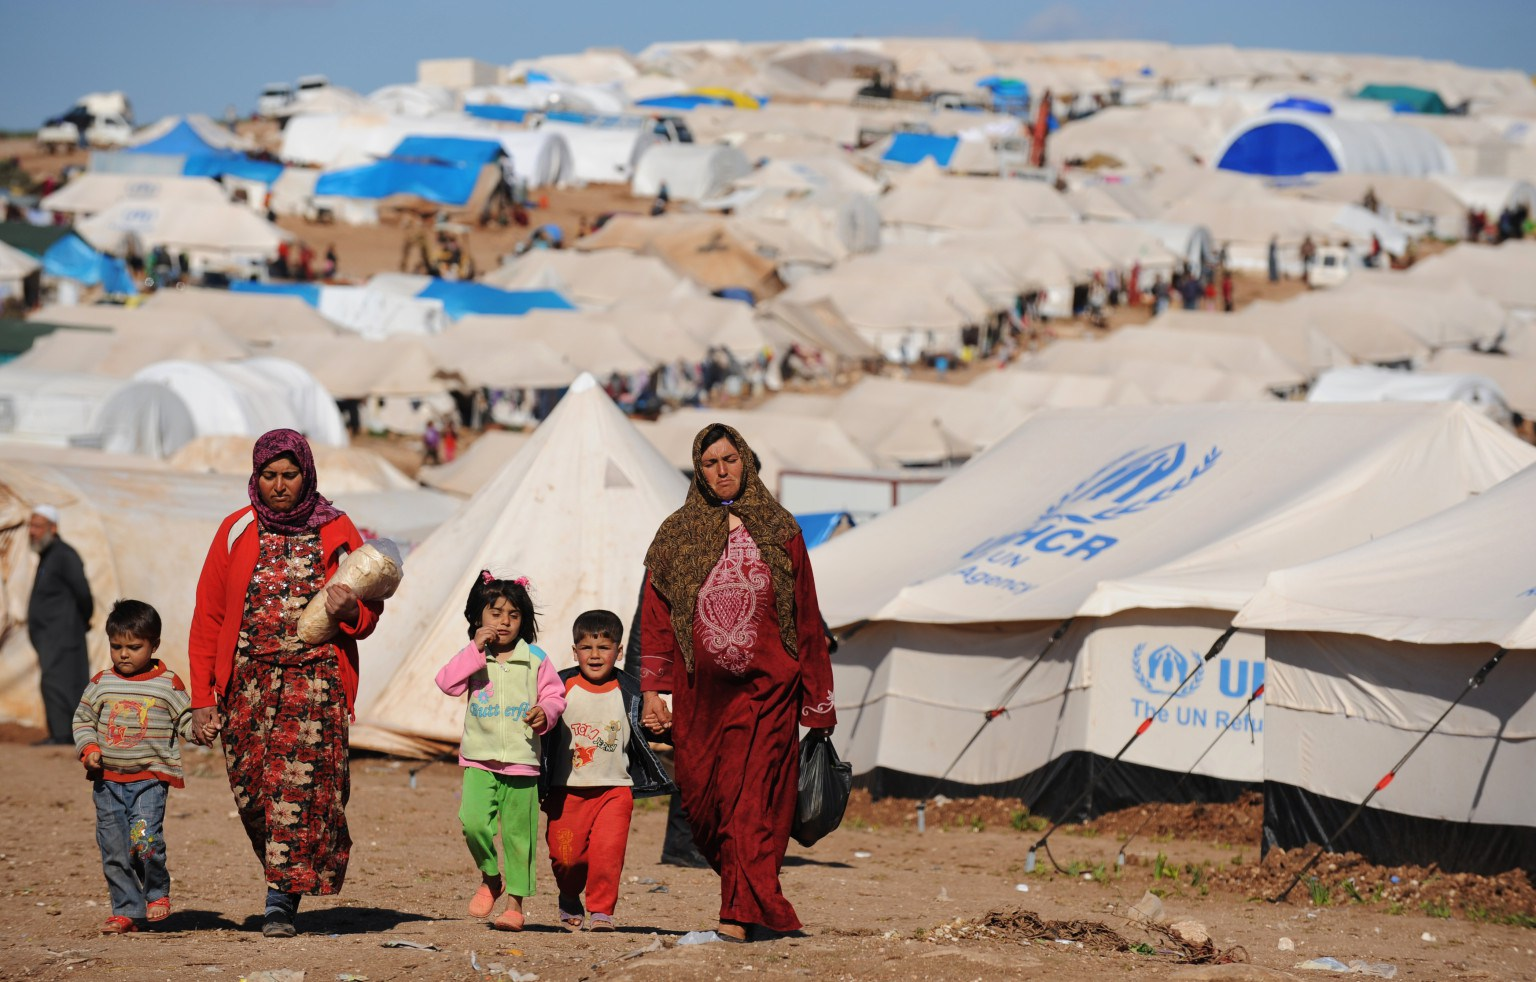 Syrian internally displaced people walk in the Atme camp, along the Turkish border in the northwestern Syrian province of Idlib, on March 19, 2013. The conflict in Syria between rebel forces and pro-government troops has killed at least 70,000 people, and forced more than one million Syrians to seek refuge abroad. AFP PHOTO/BULENT KILIC        (Photo credit should read BULENT KILIC/AFP/Getty Images)